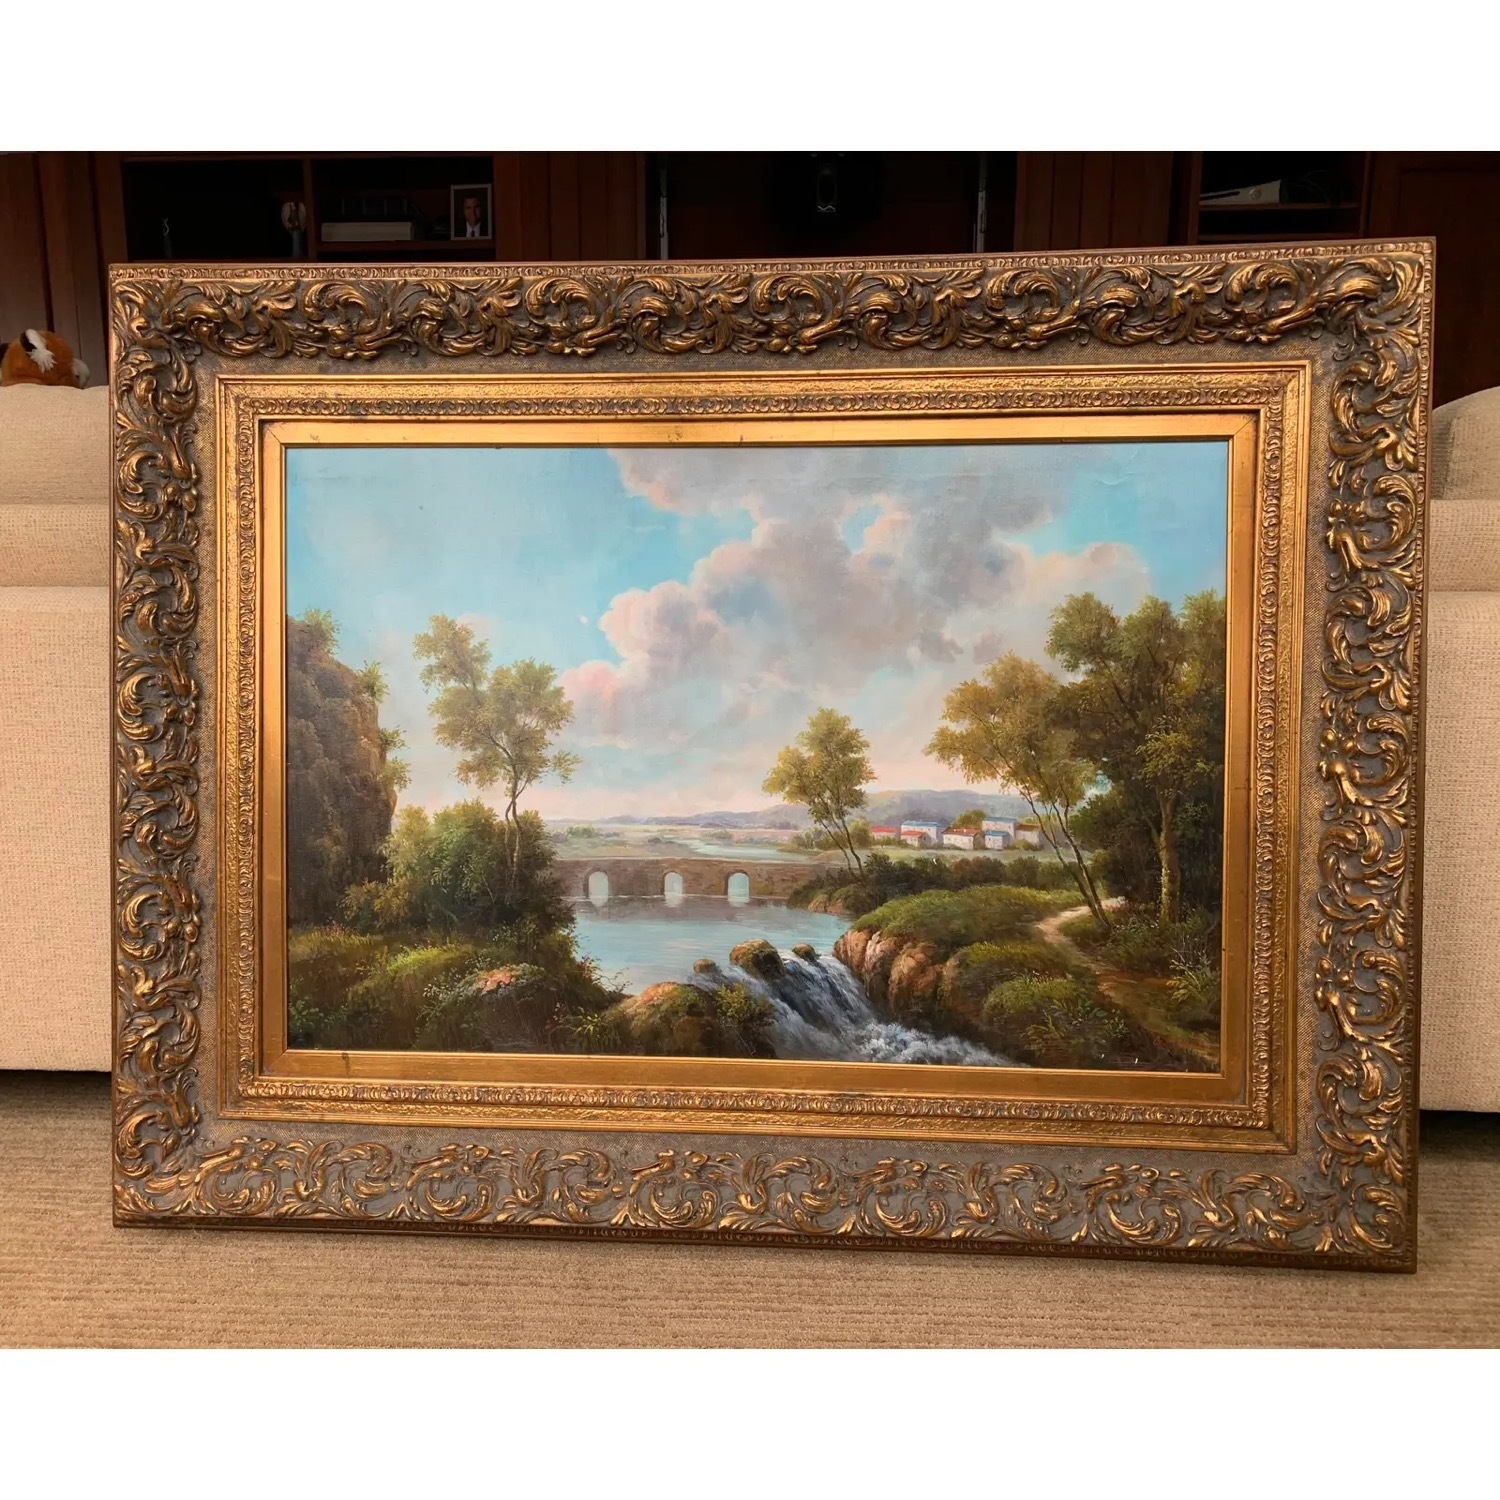 Framed Early 20th Century Oil Painting - G.Henson - image-12